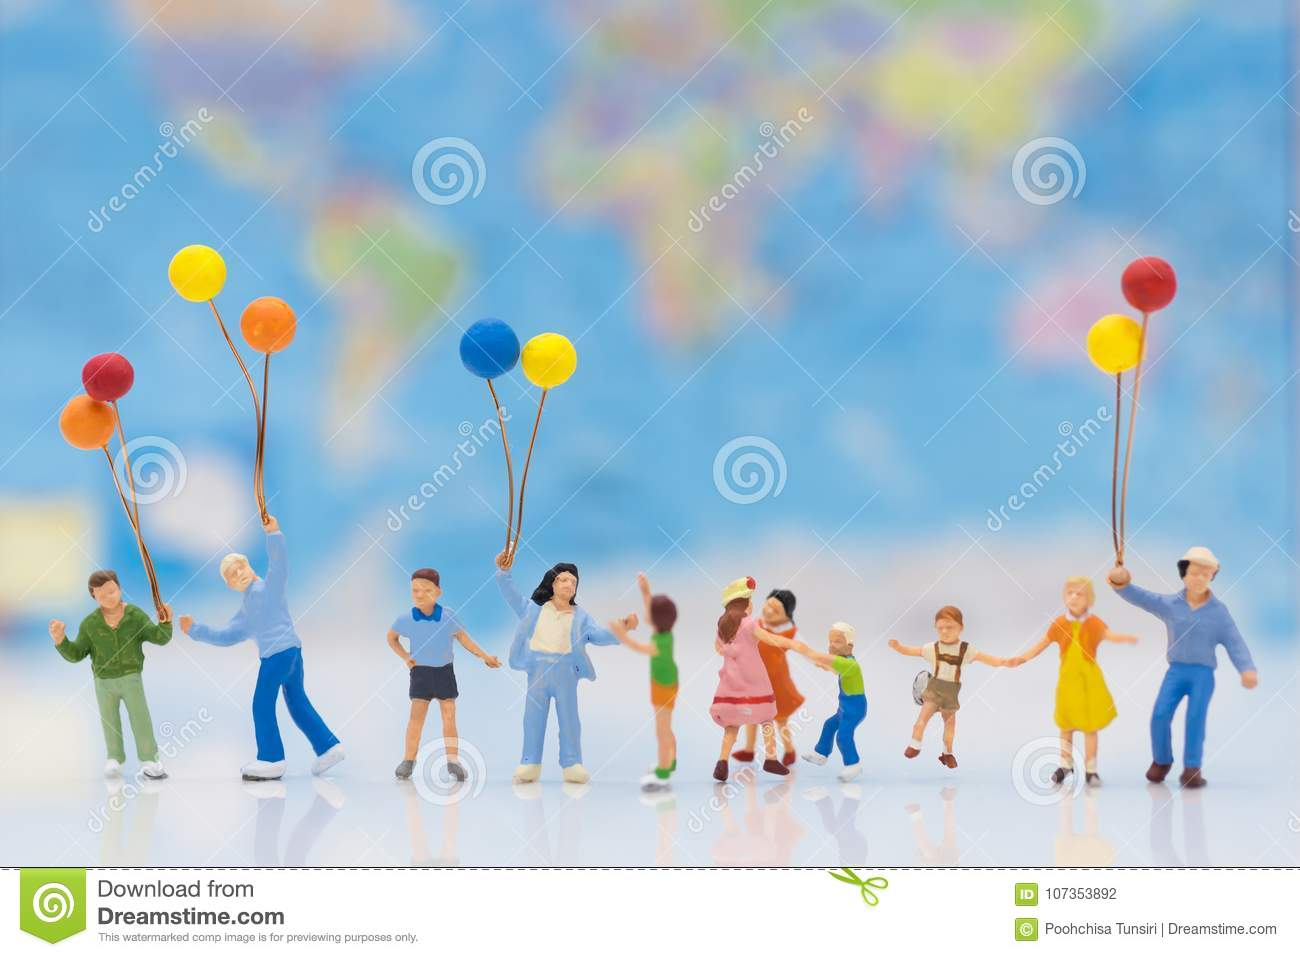 Miniature people: children hold balloons, and play together, background is map of world,